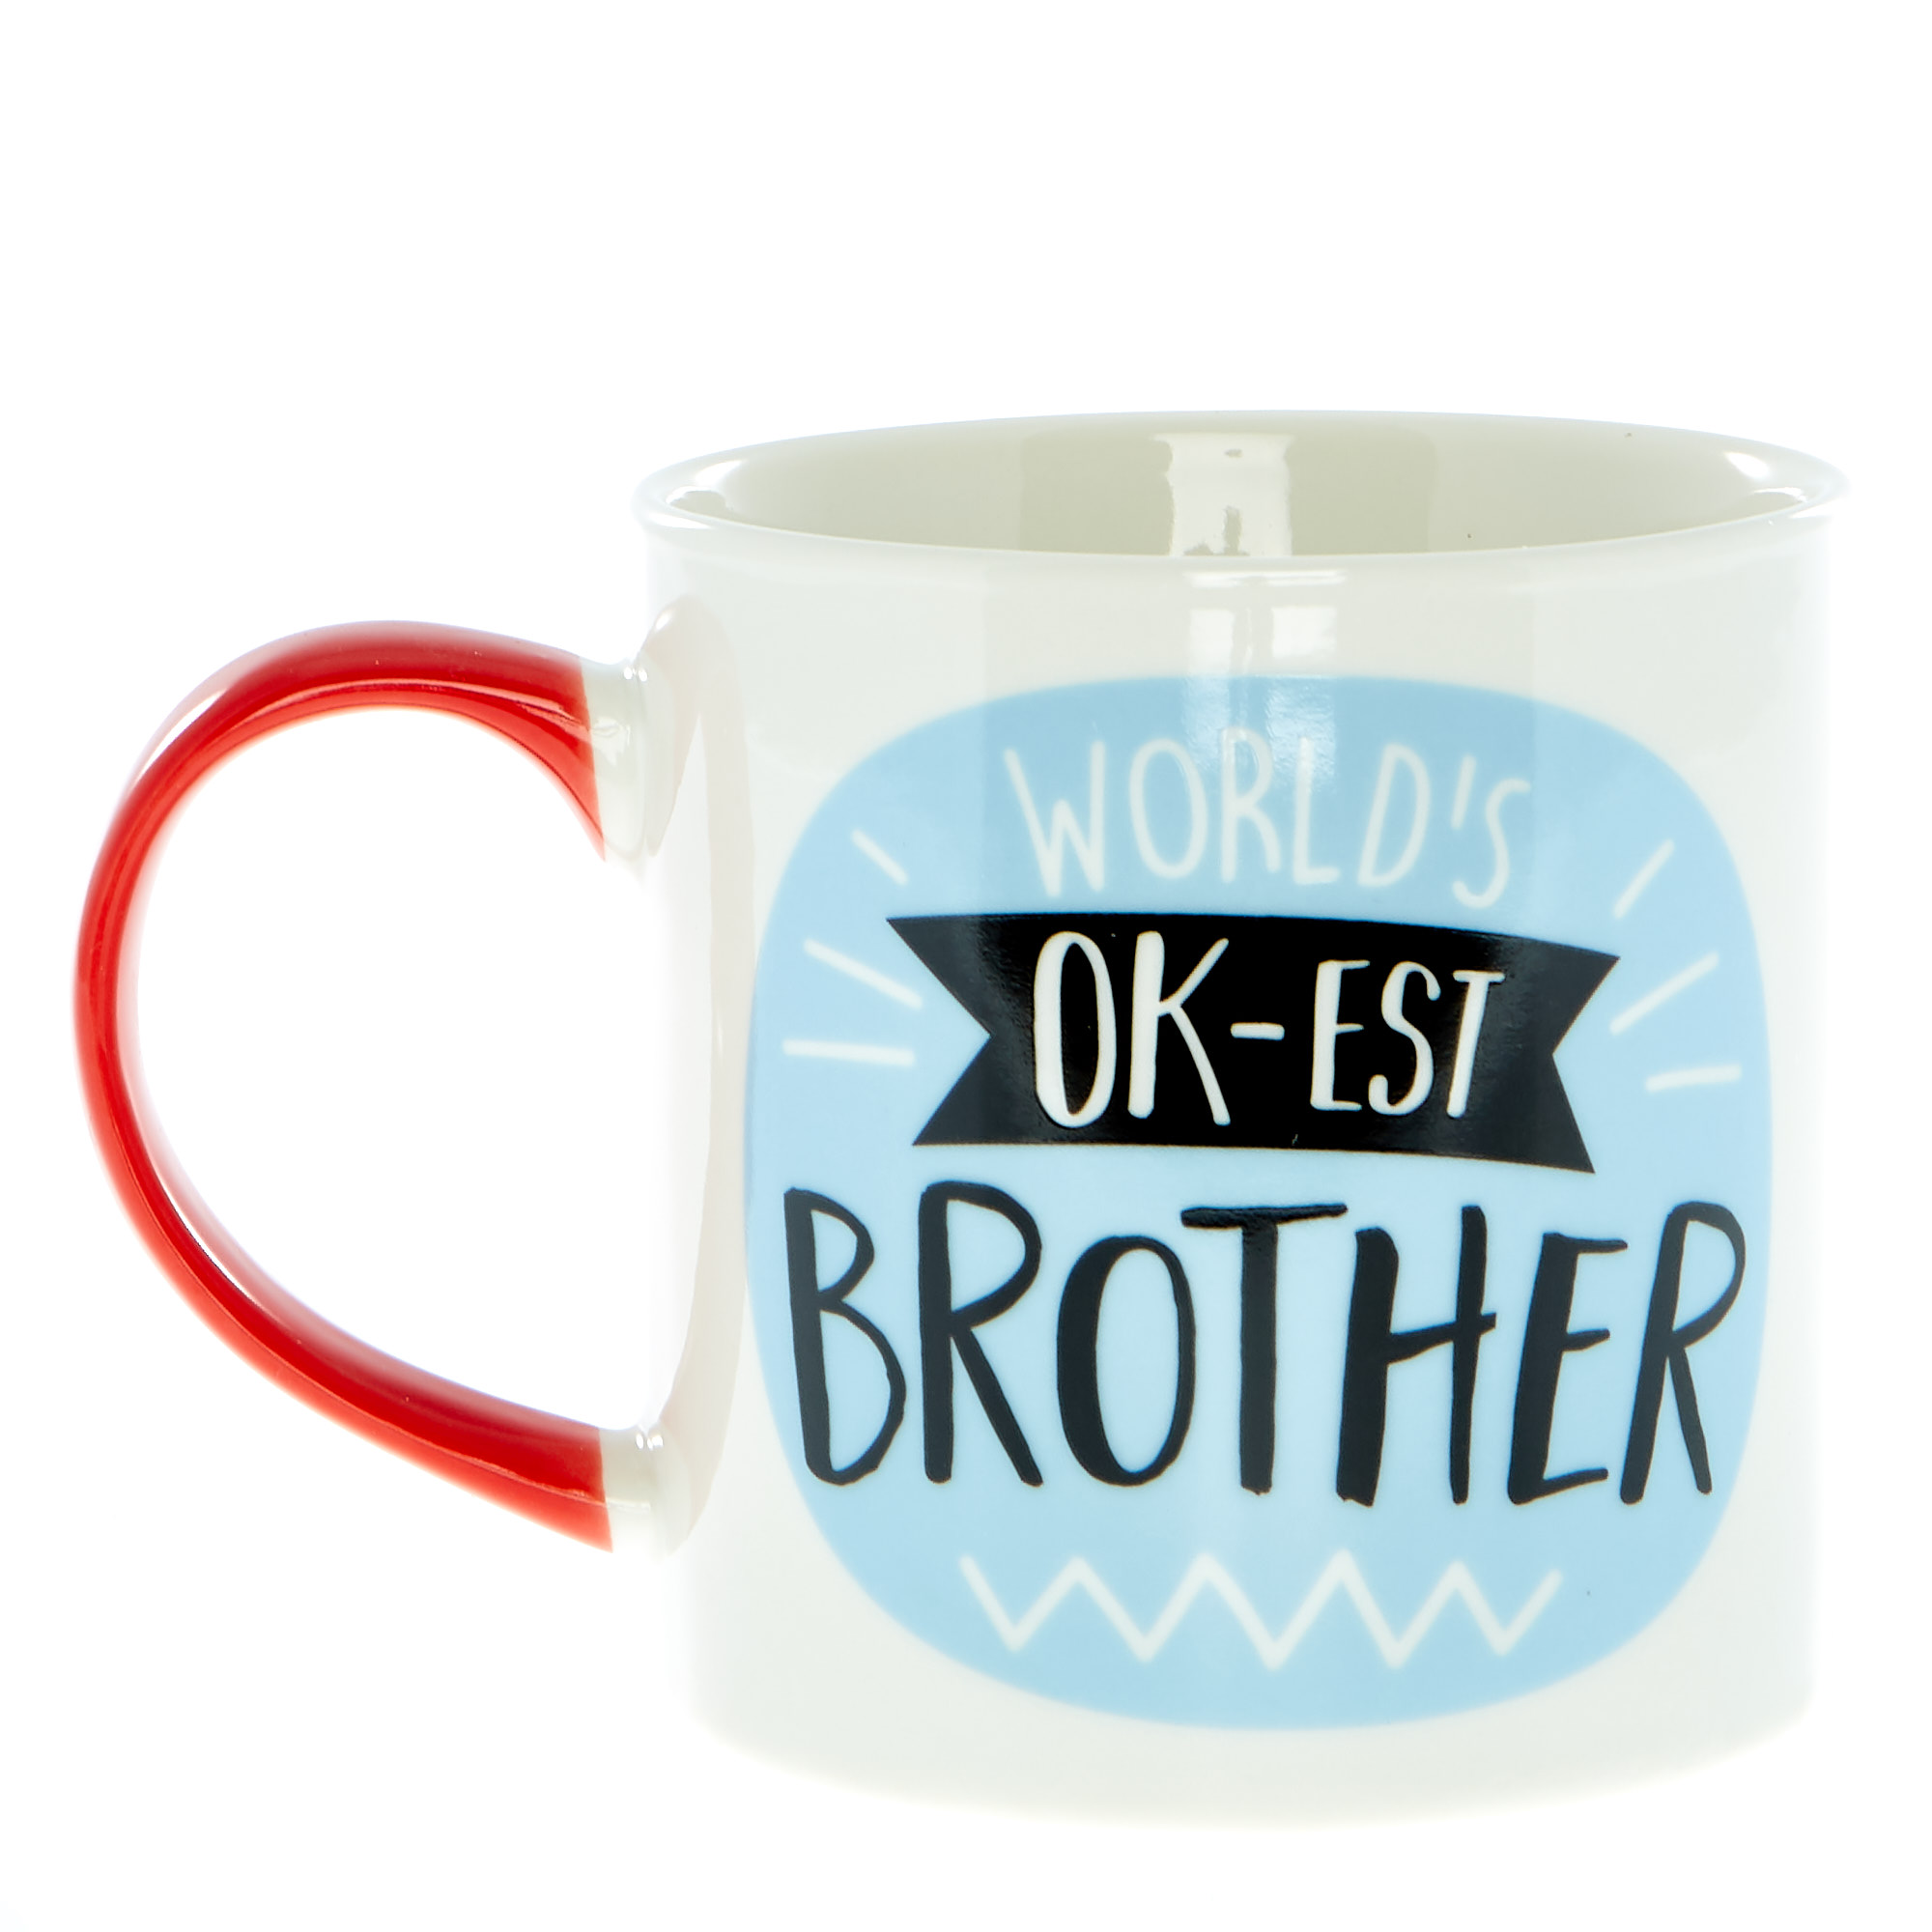 World's Ok-Est Brother Mug